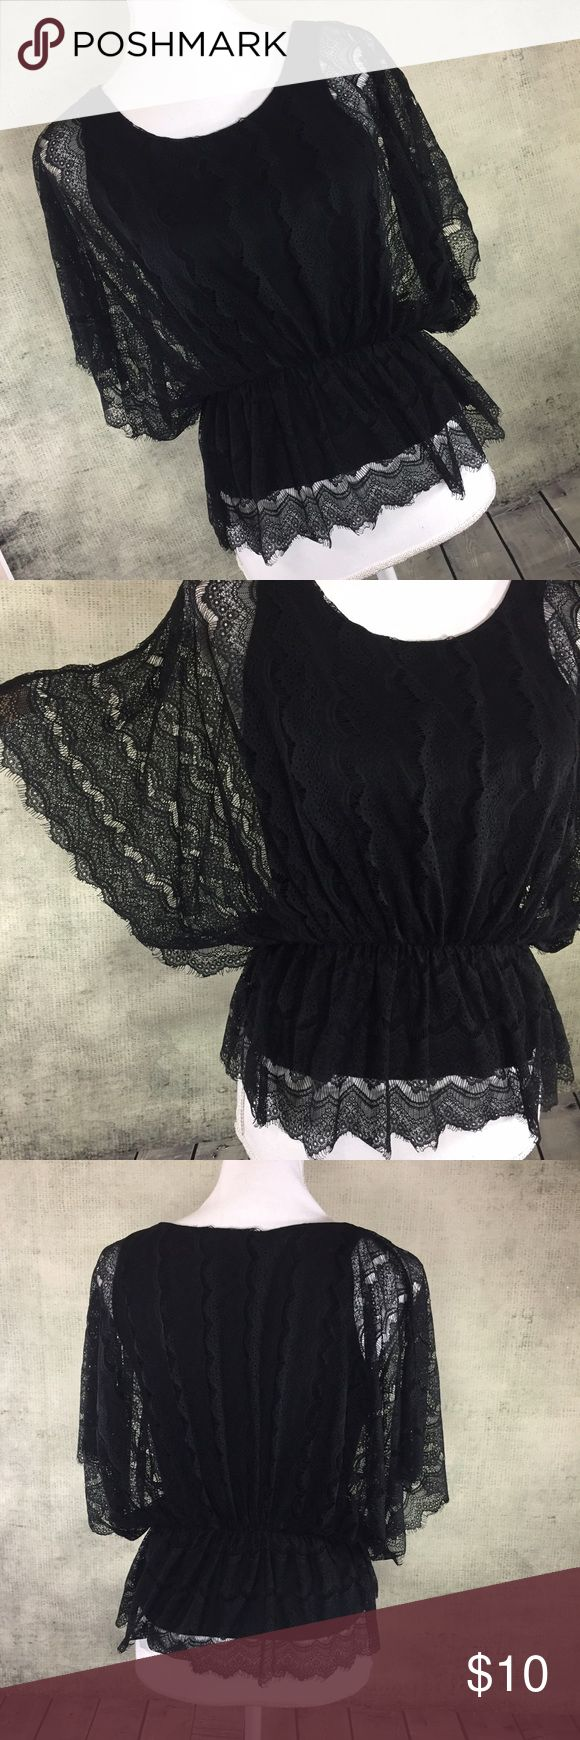 FINAL PRICE ‼️ Black Lace Sheer Batwing Peplum Top This top is perfect for date night. It is fully lace (overlayed a black tank) with batwing lace sleeves. There is an elastic waist that gives it a peplum look. 100% nylon. Measurements - In inches, taken flat and are approximate (double where appropriate): 21 length, 10 waist, 15 bust Old Navy Tops Blouses